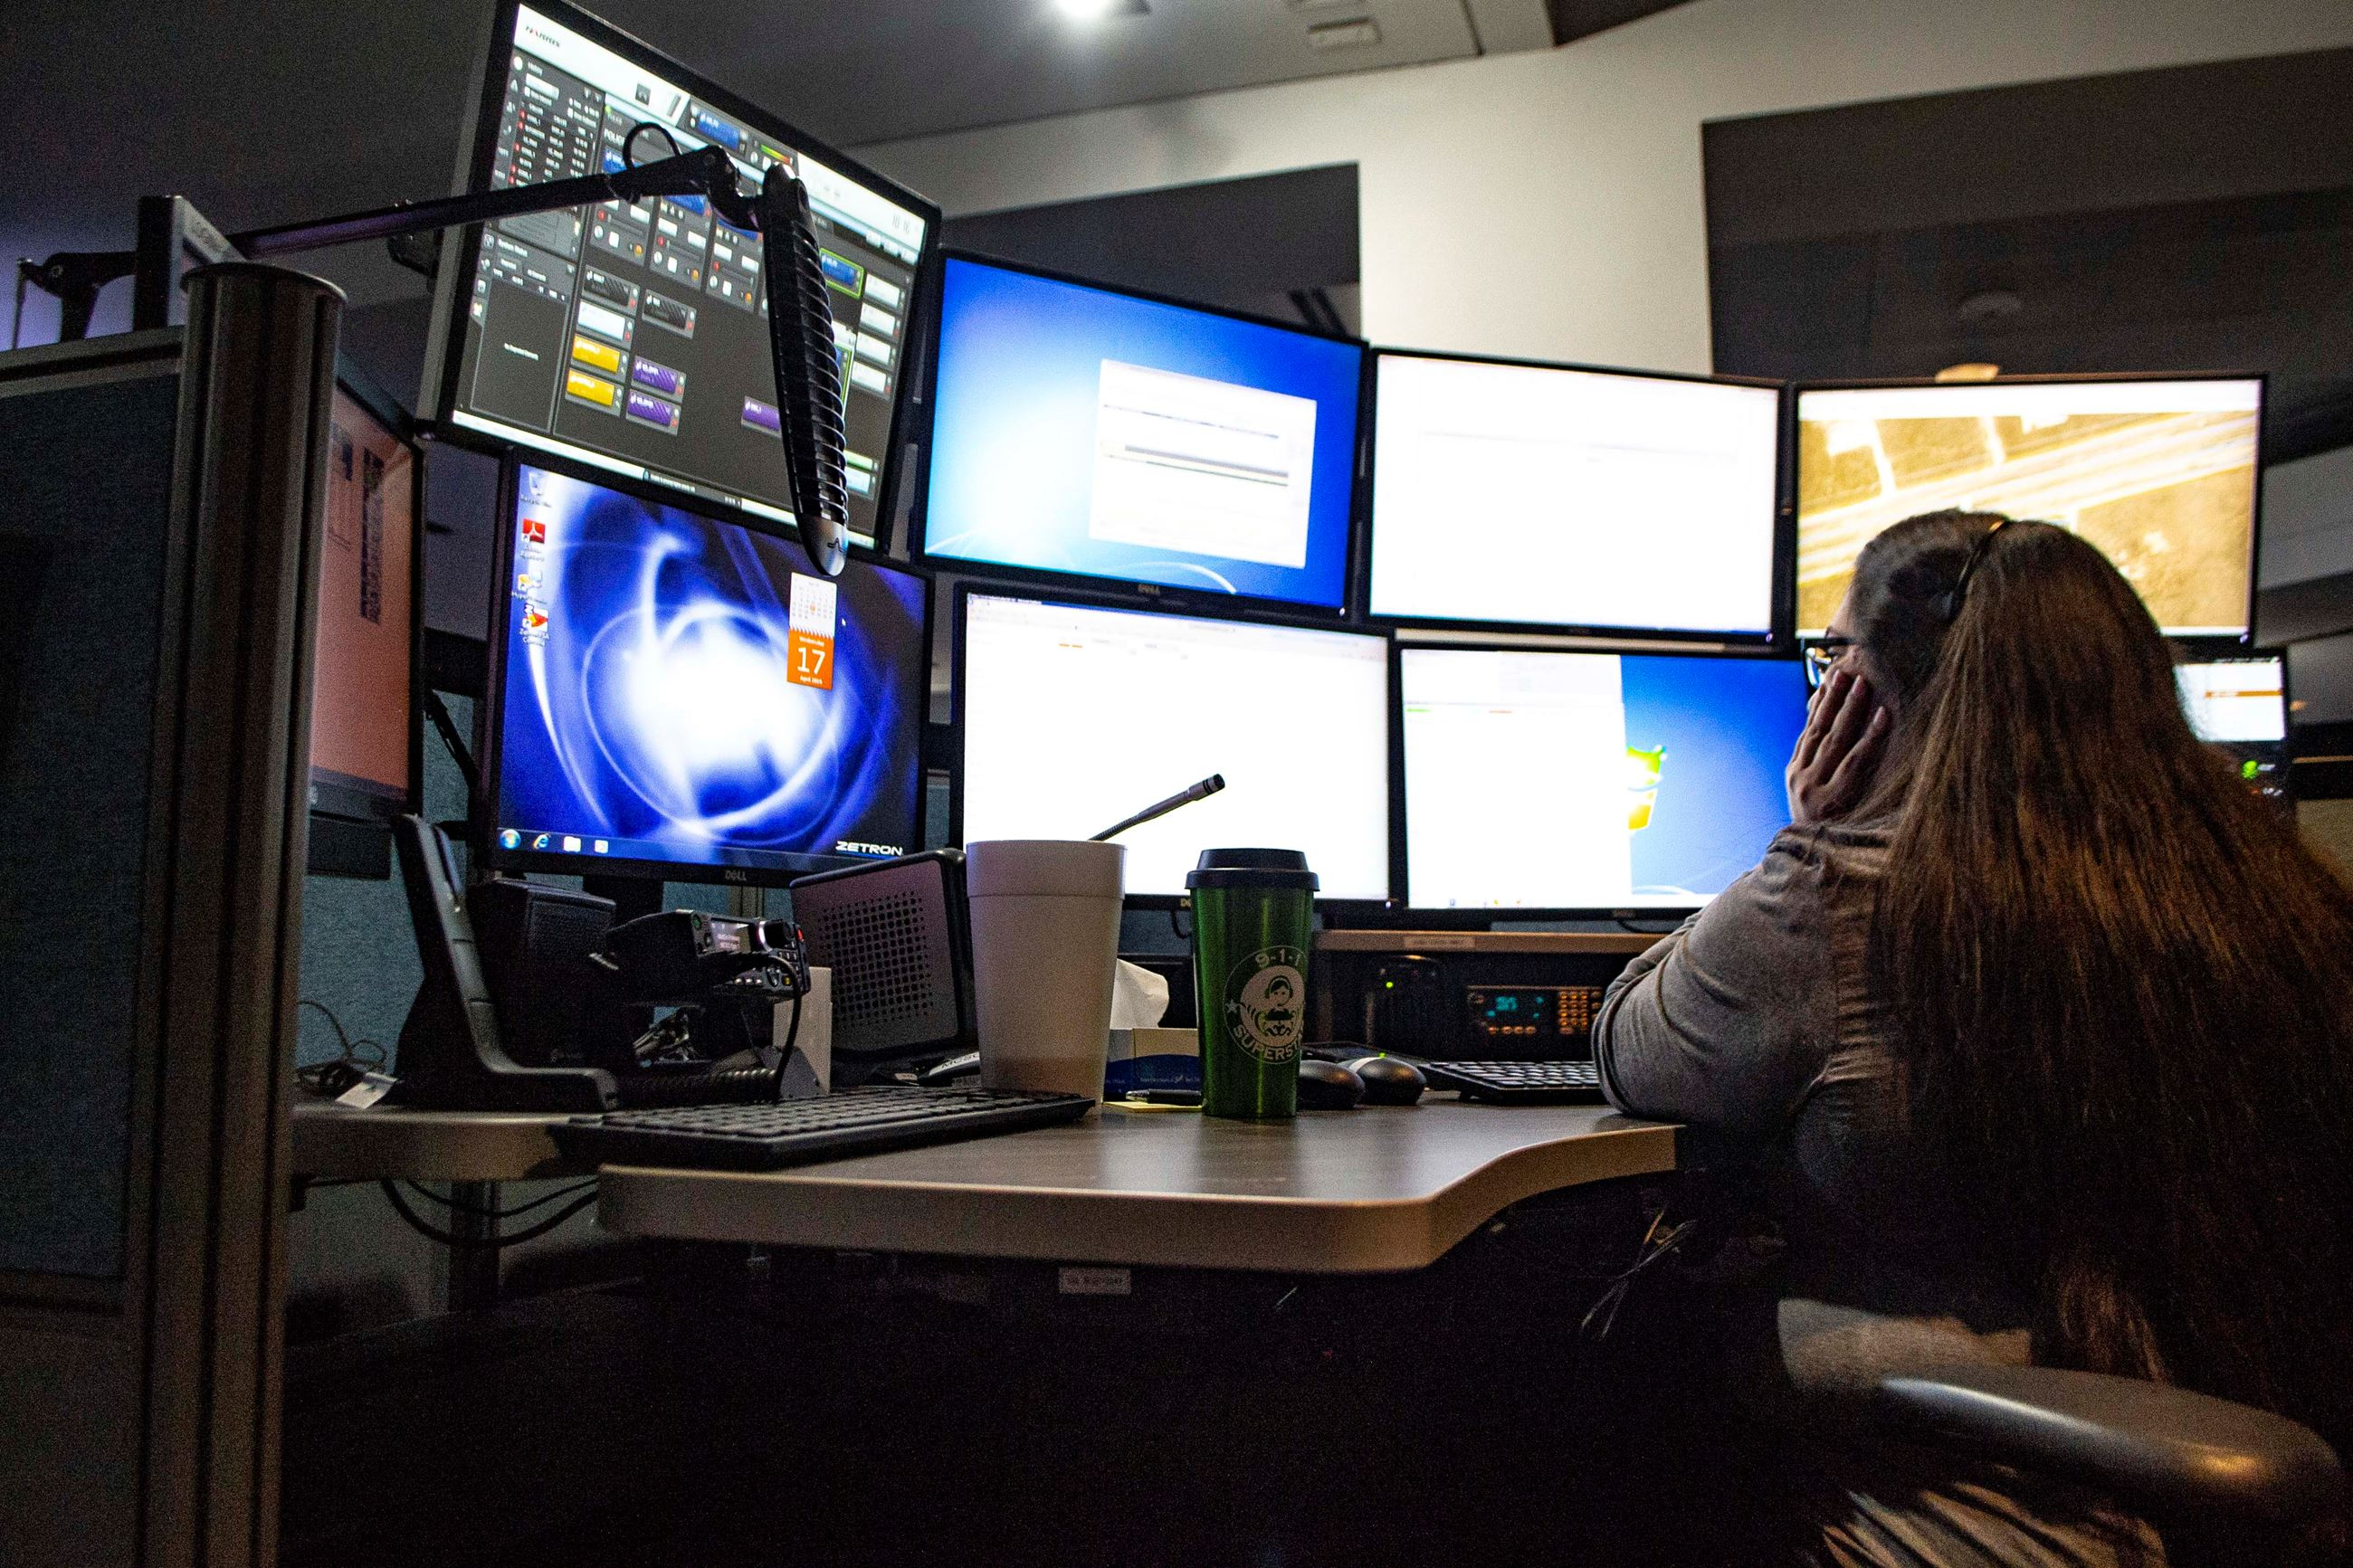 911 Dispatcher sitting in front of computers